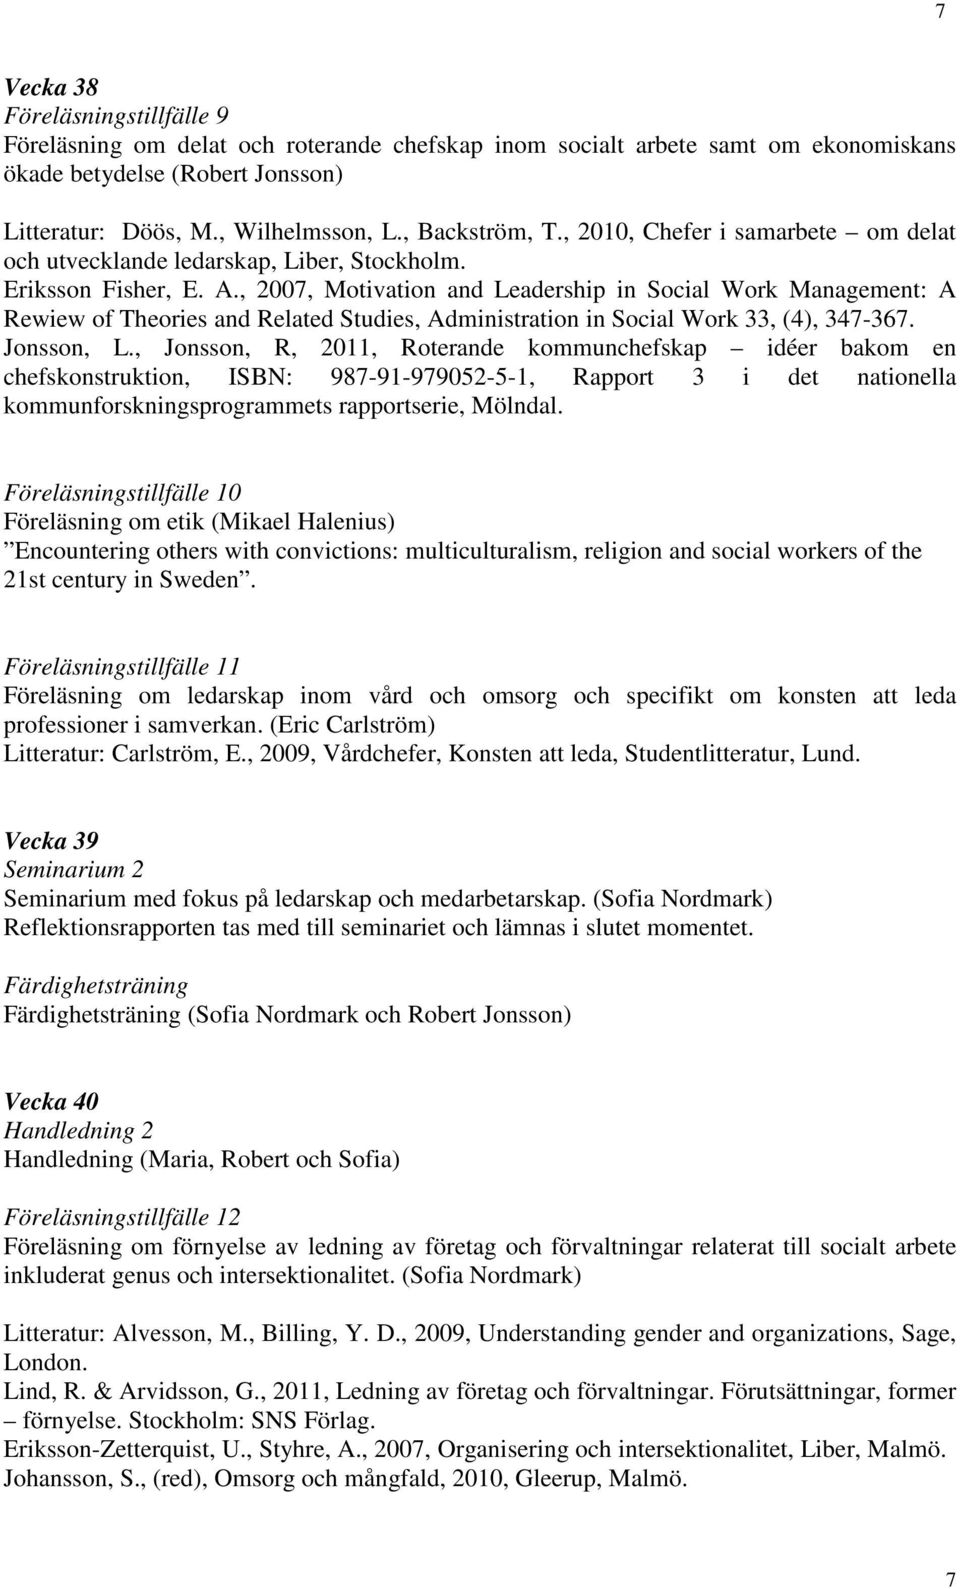 , 2007, Motivation and Leadership in Social Work Management: A Rewiew of Theories and Related Studies, Administration in Social Work 33, (4), 347-367. Jonsson, L.